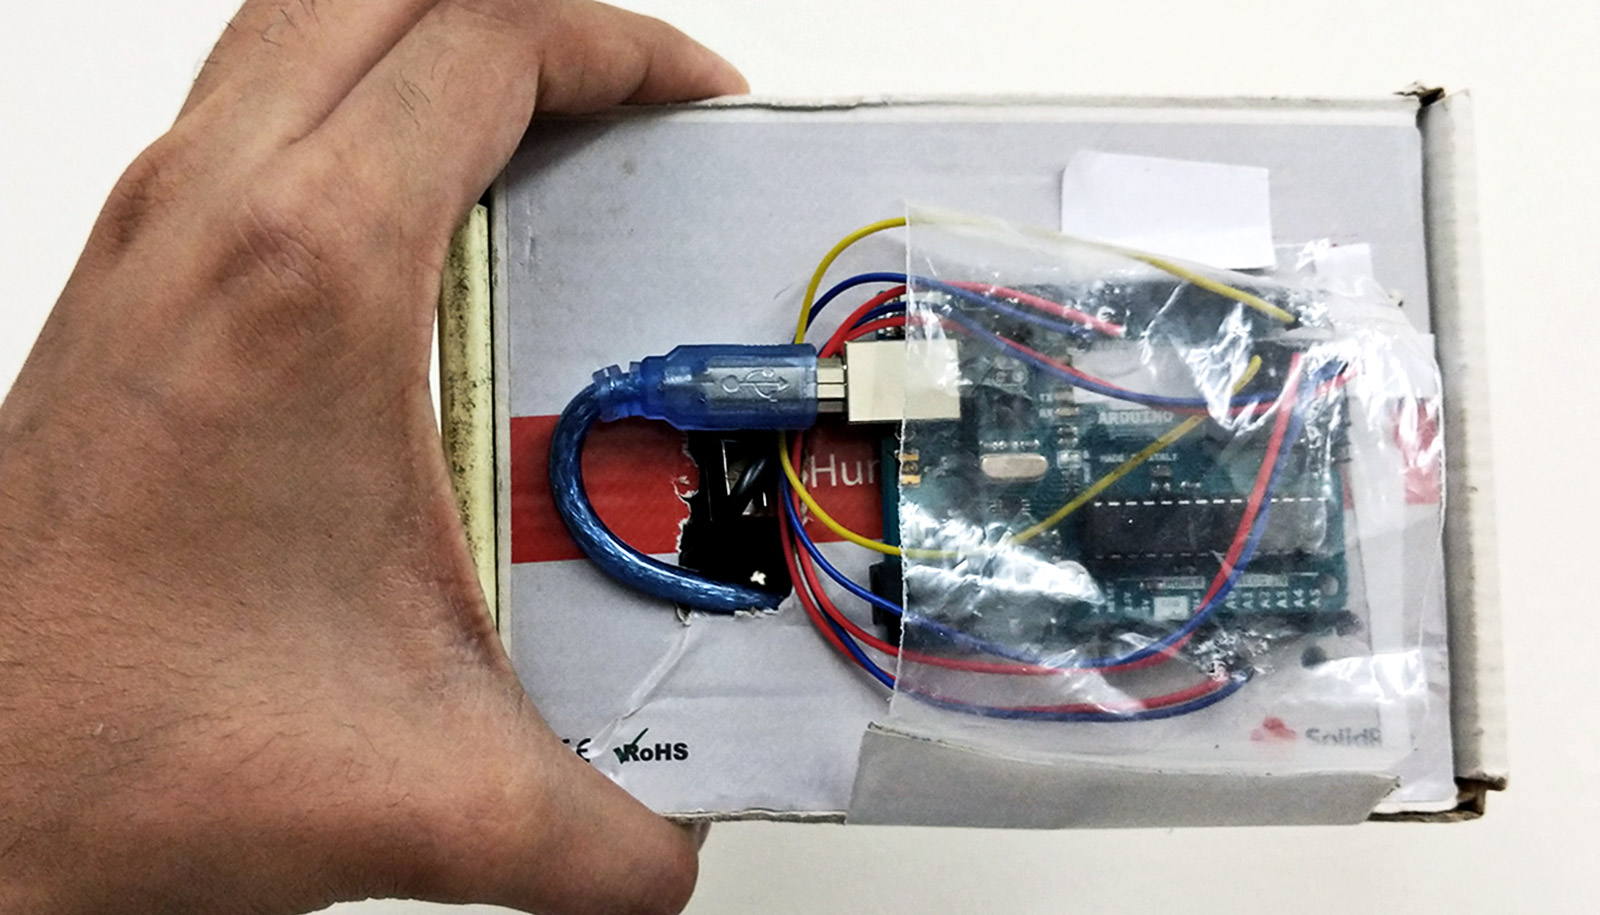 The device is a cardboard box with a USB cord coming out of it and into a chip covered in plastic